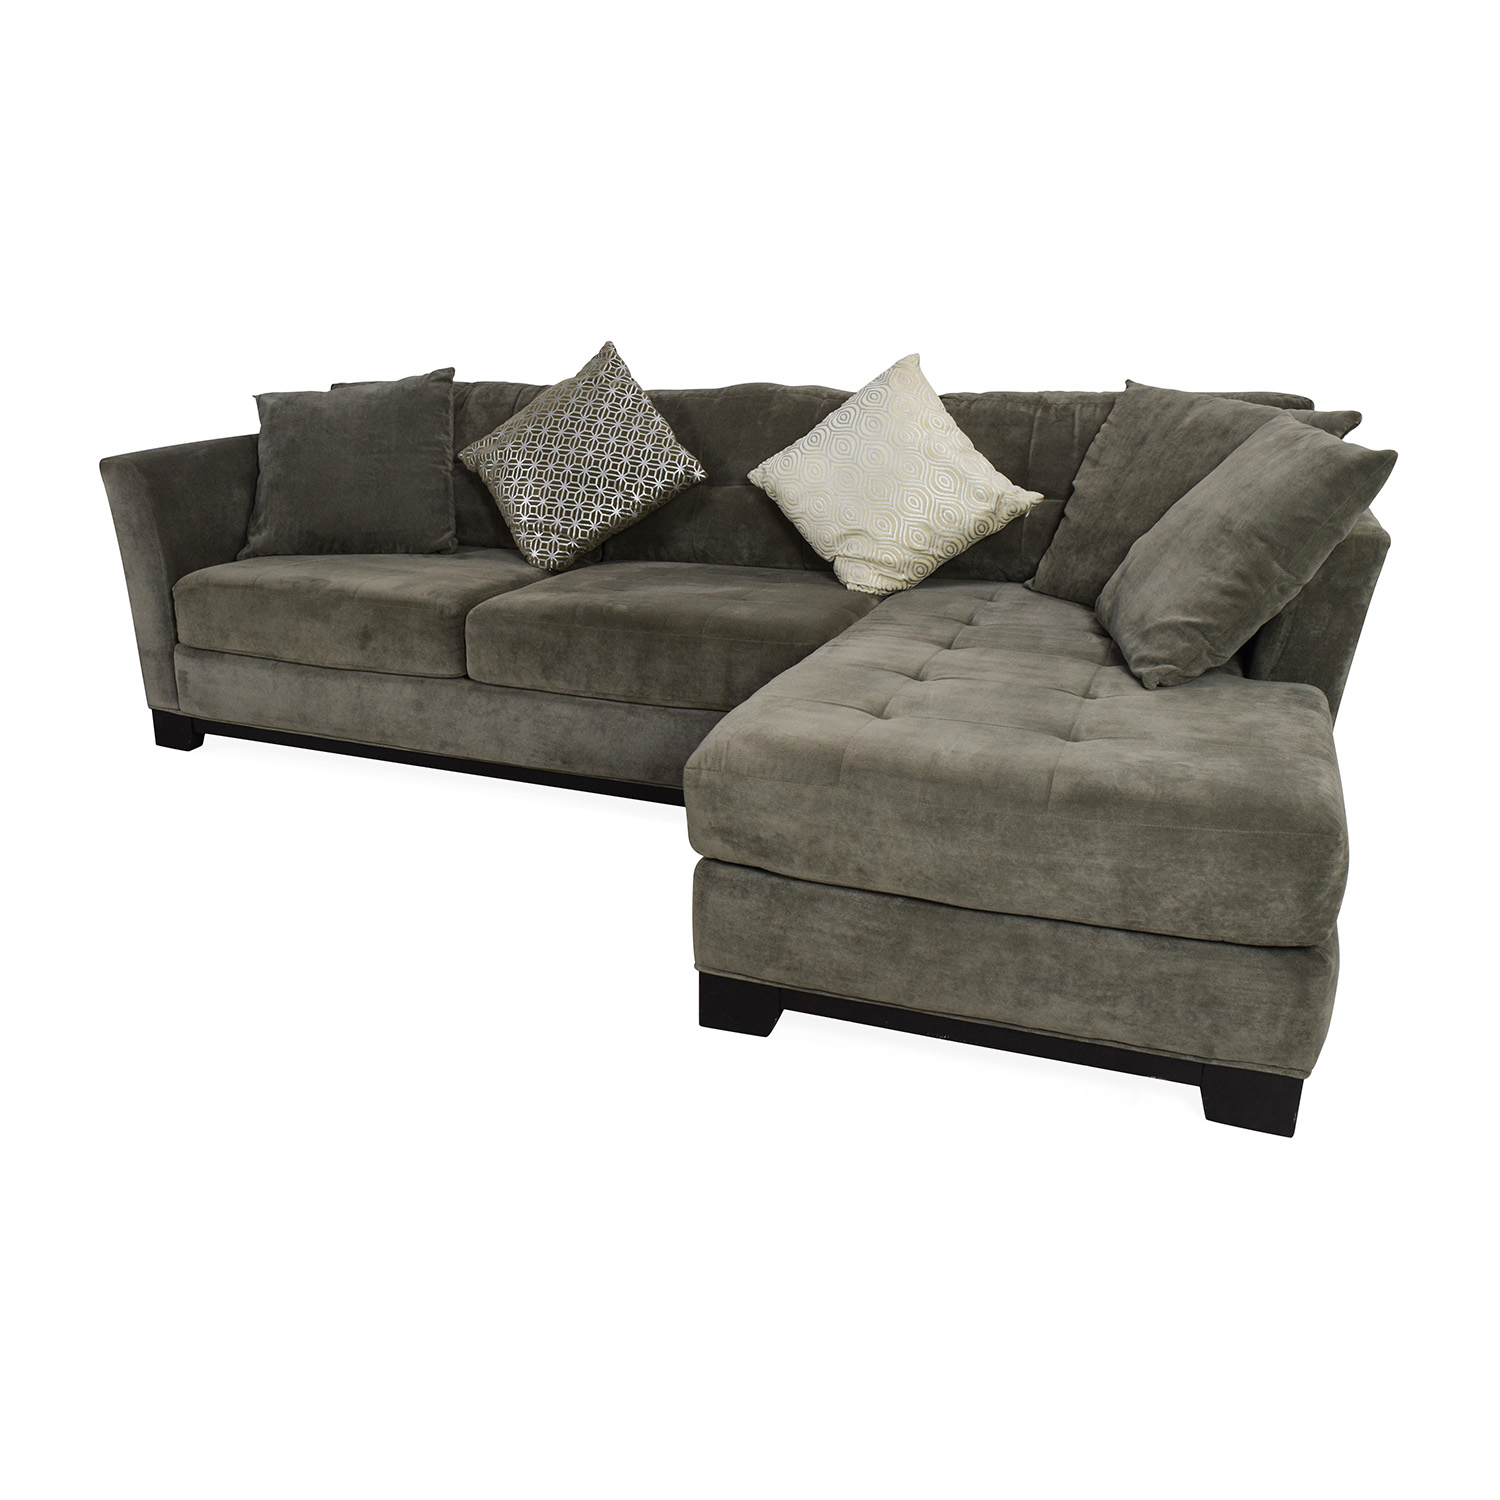 Gray sectional sofa with chaise hereo sofa for Sectional couch